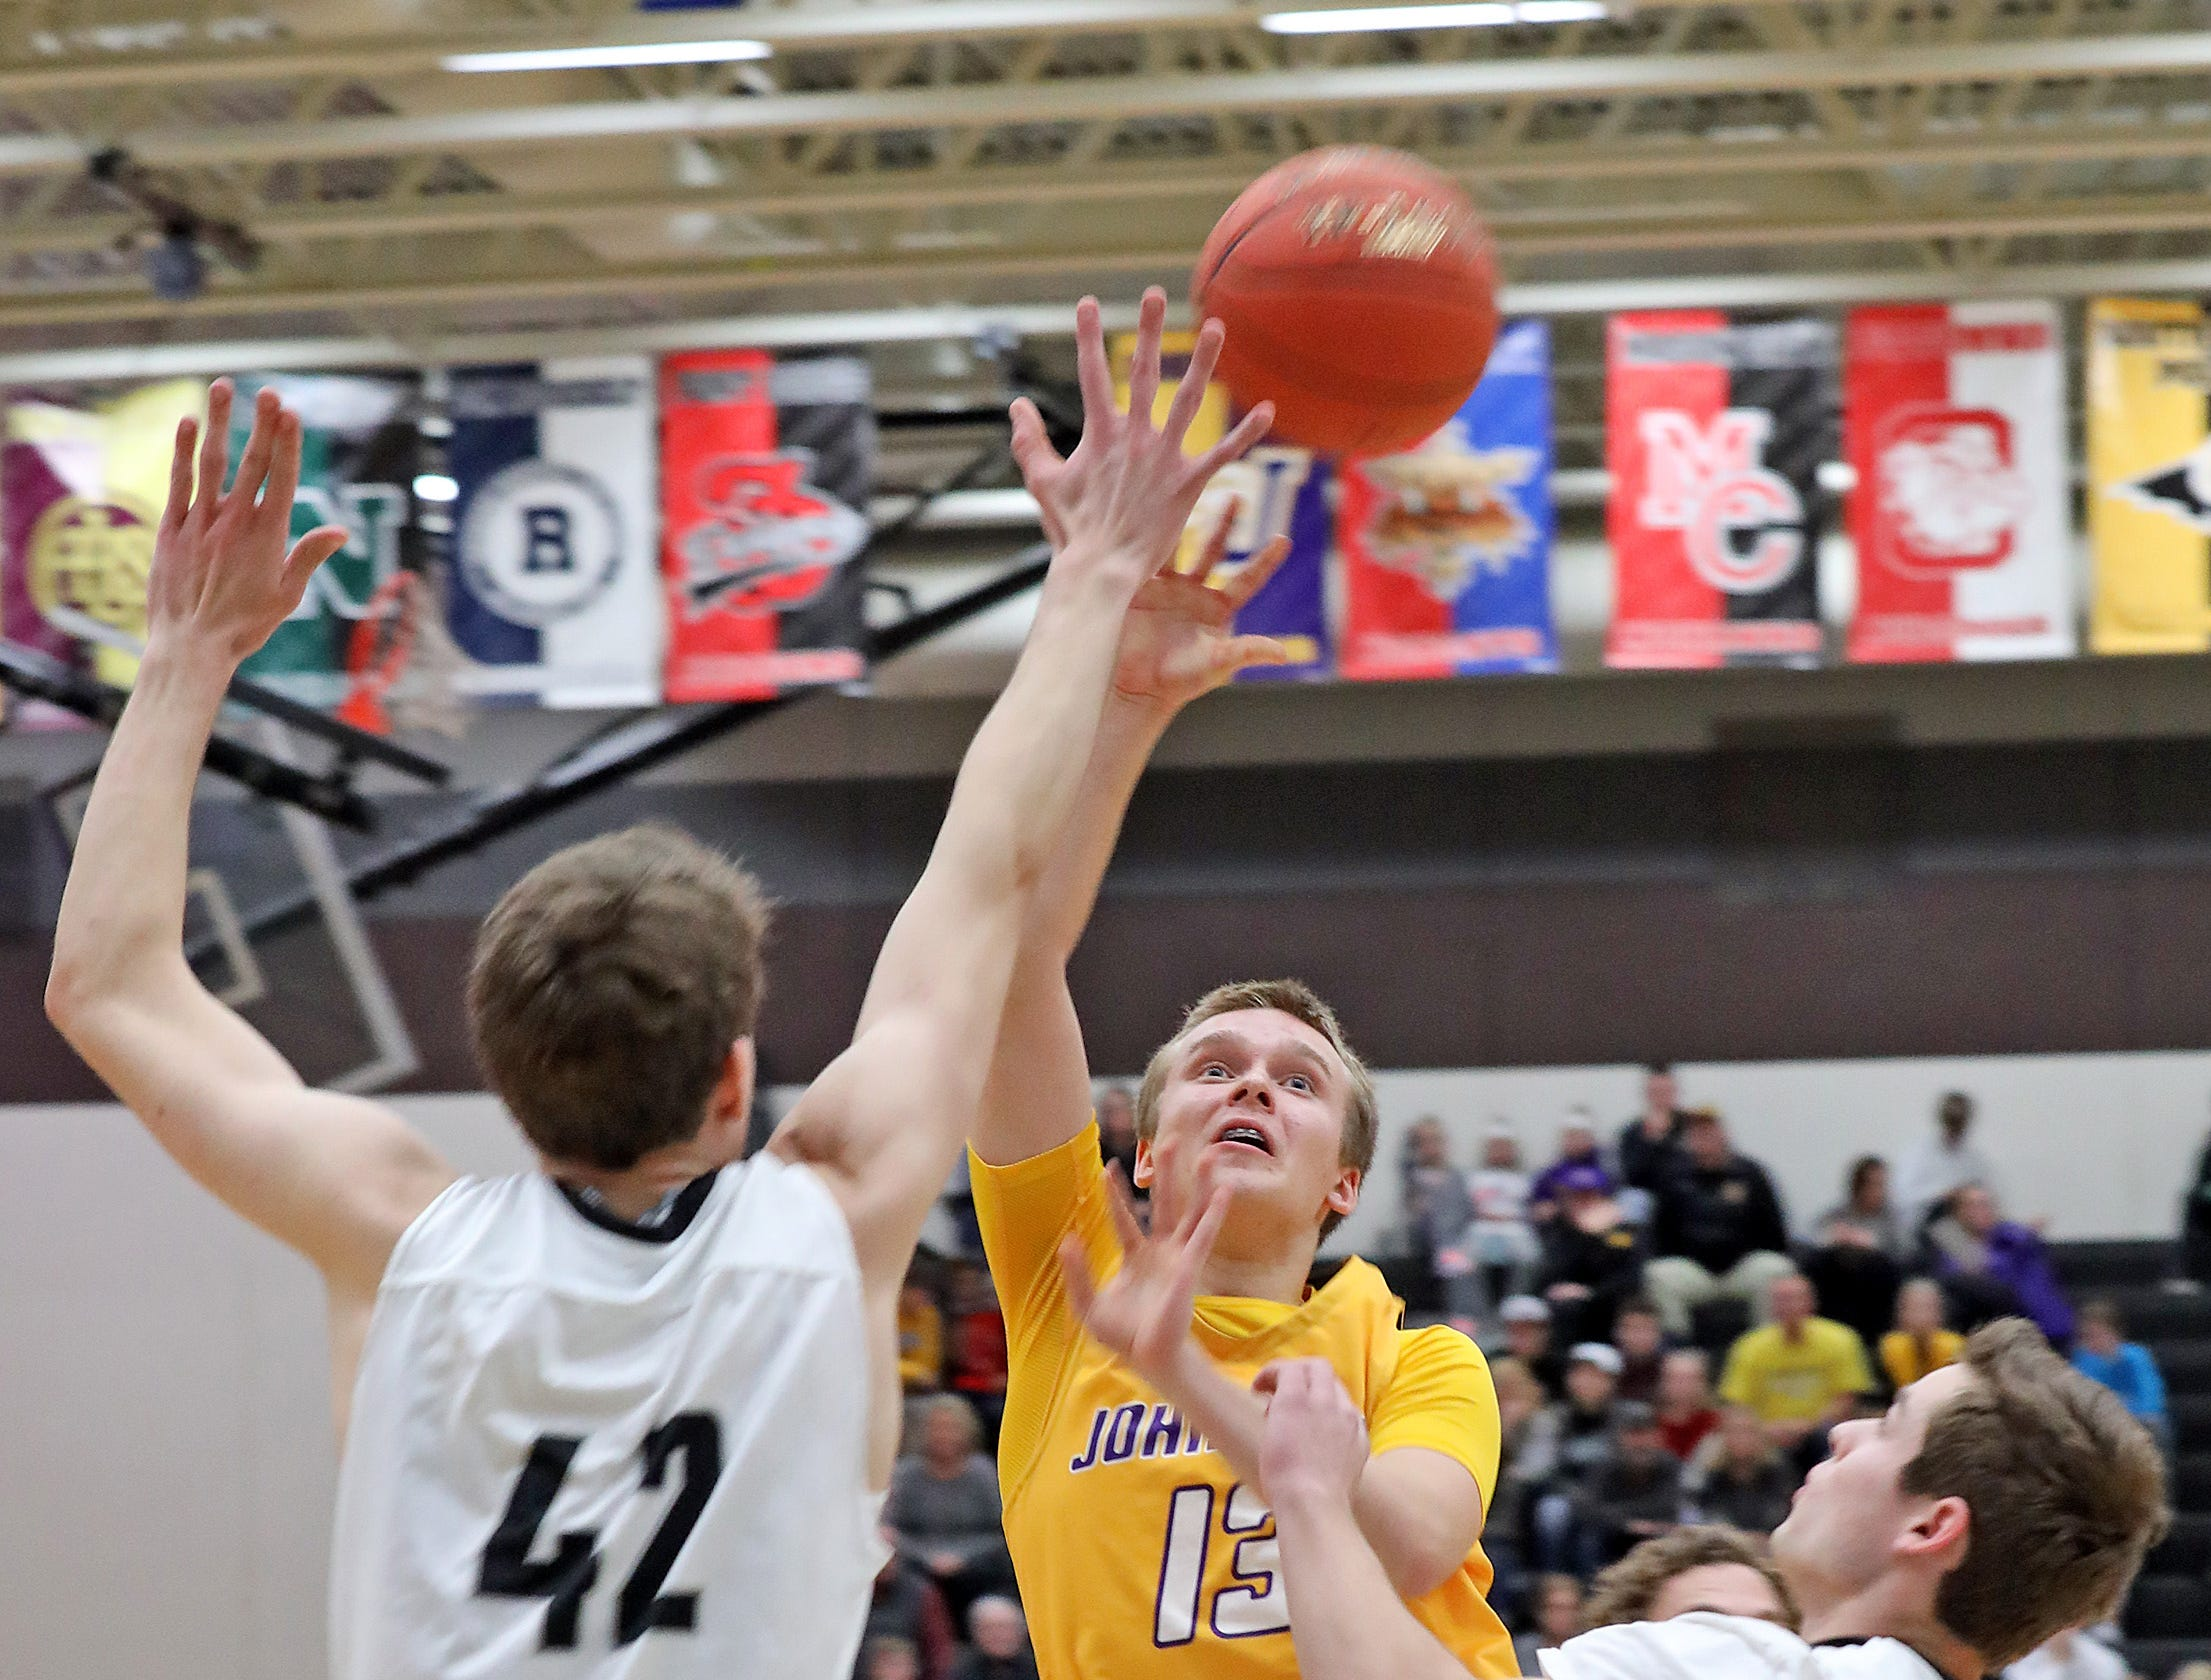 Johnston freshman Jacob Runyan drives the lane as the Johnston Dragons compete against the Ankeny Centennial Jaguars in high school boys basketball on Friday, Jan. 4, 2019 at Ankeny Centennial High School.  Centennial won 53 to 46.